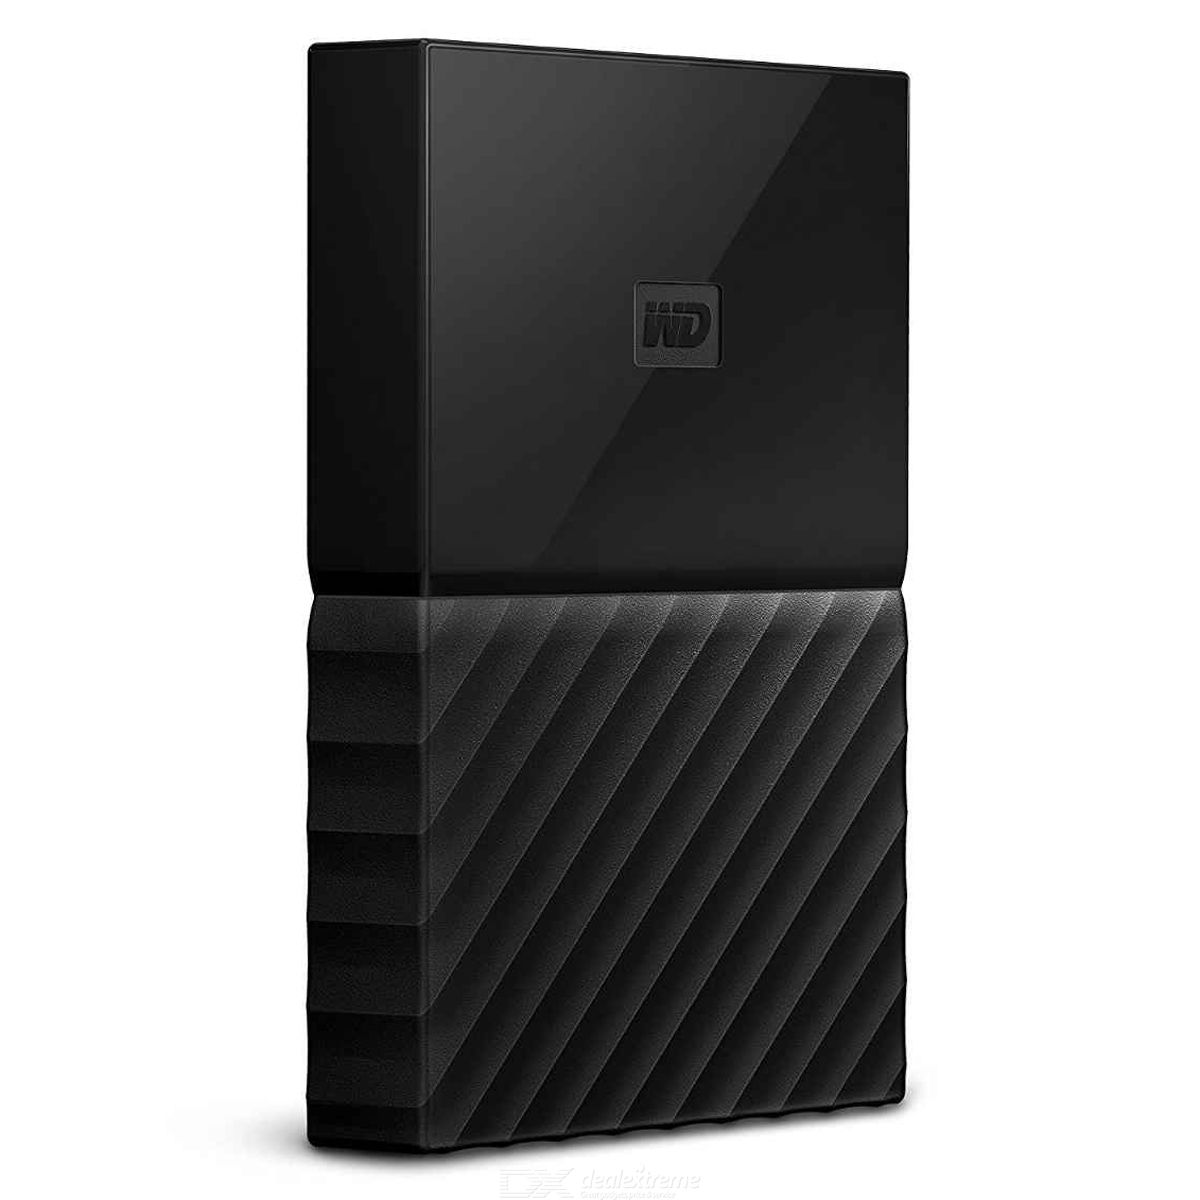 WD My Passport 1TB 2.5quot External Drive USB3.0 WDBYNN0010BBK - Black